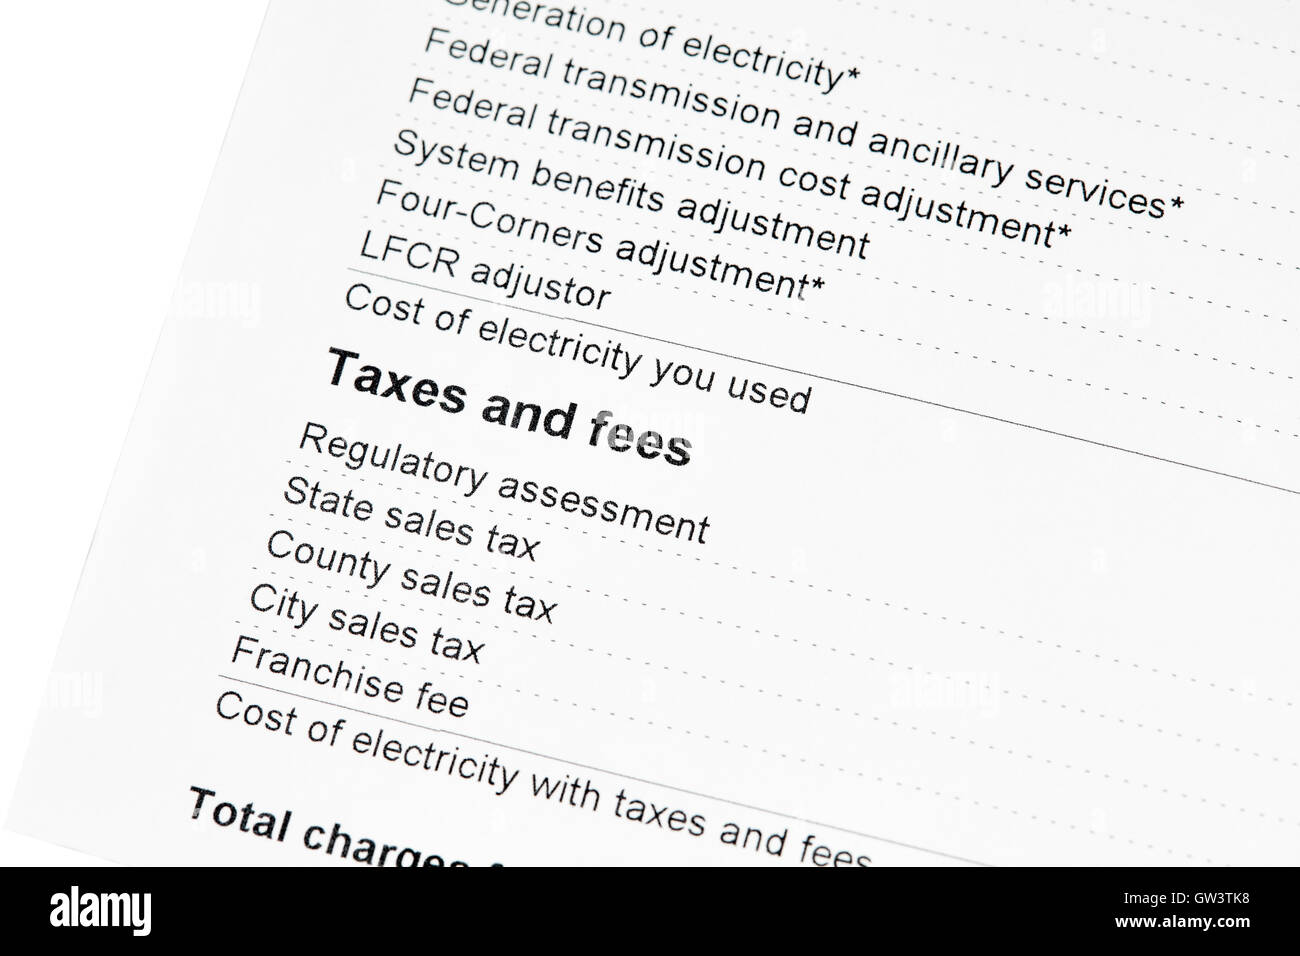 Taxes and Fees on a residential electric bill - Stock Image